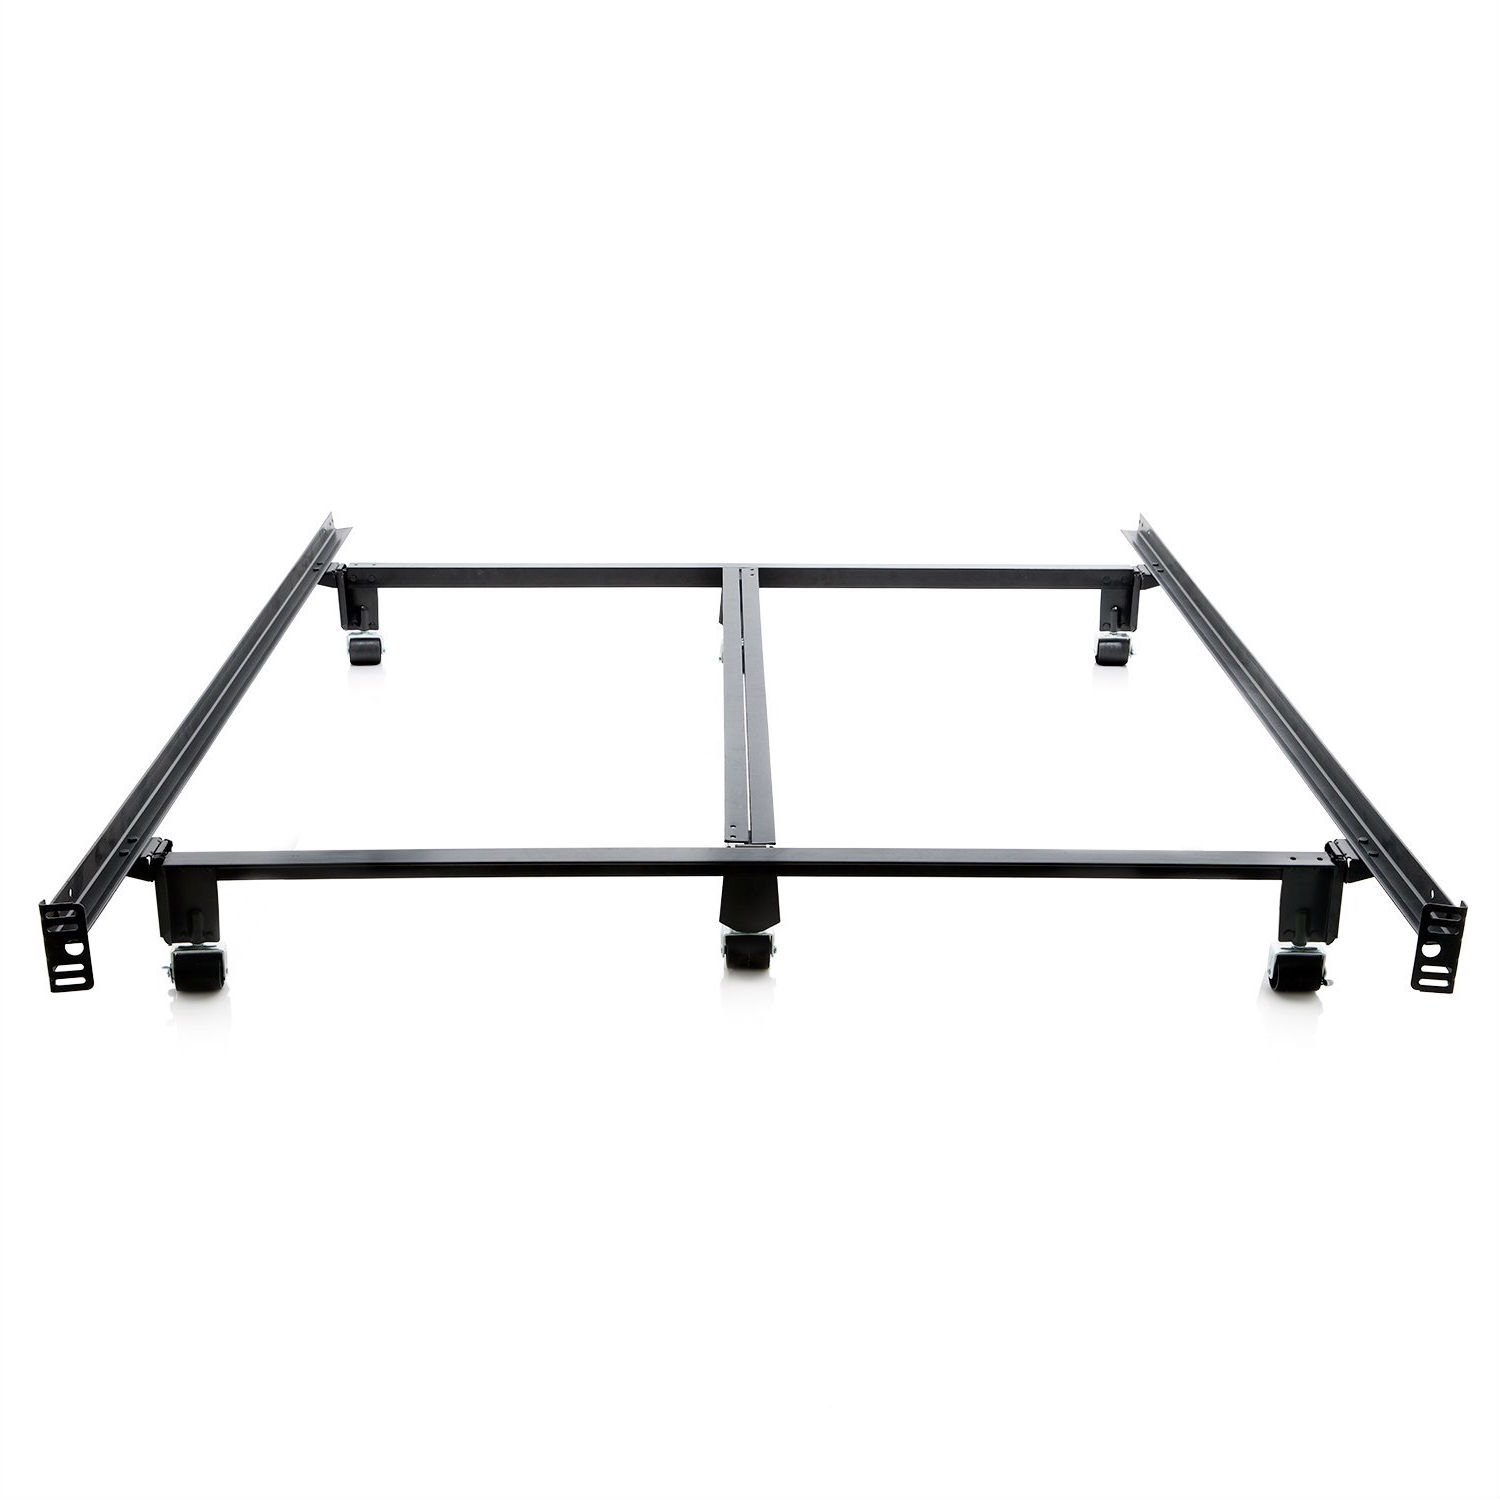 king size heavy duty metal bed frame with locking rug roller casters wheels